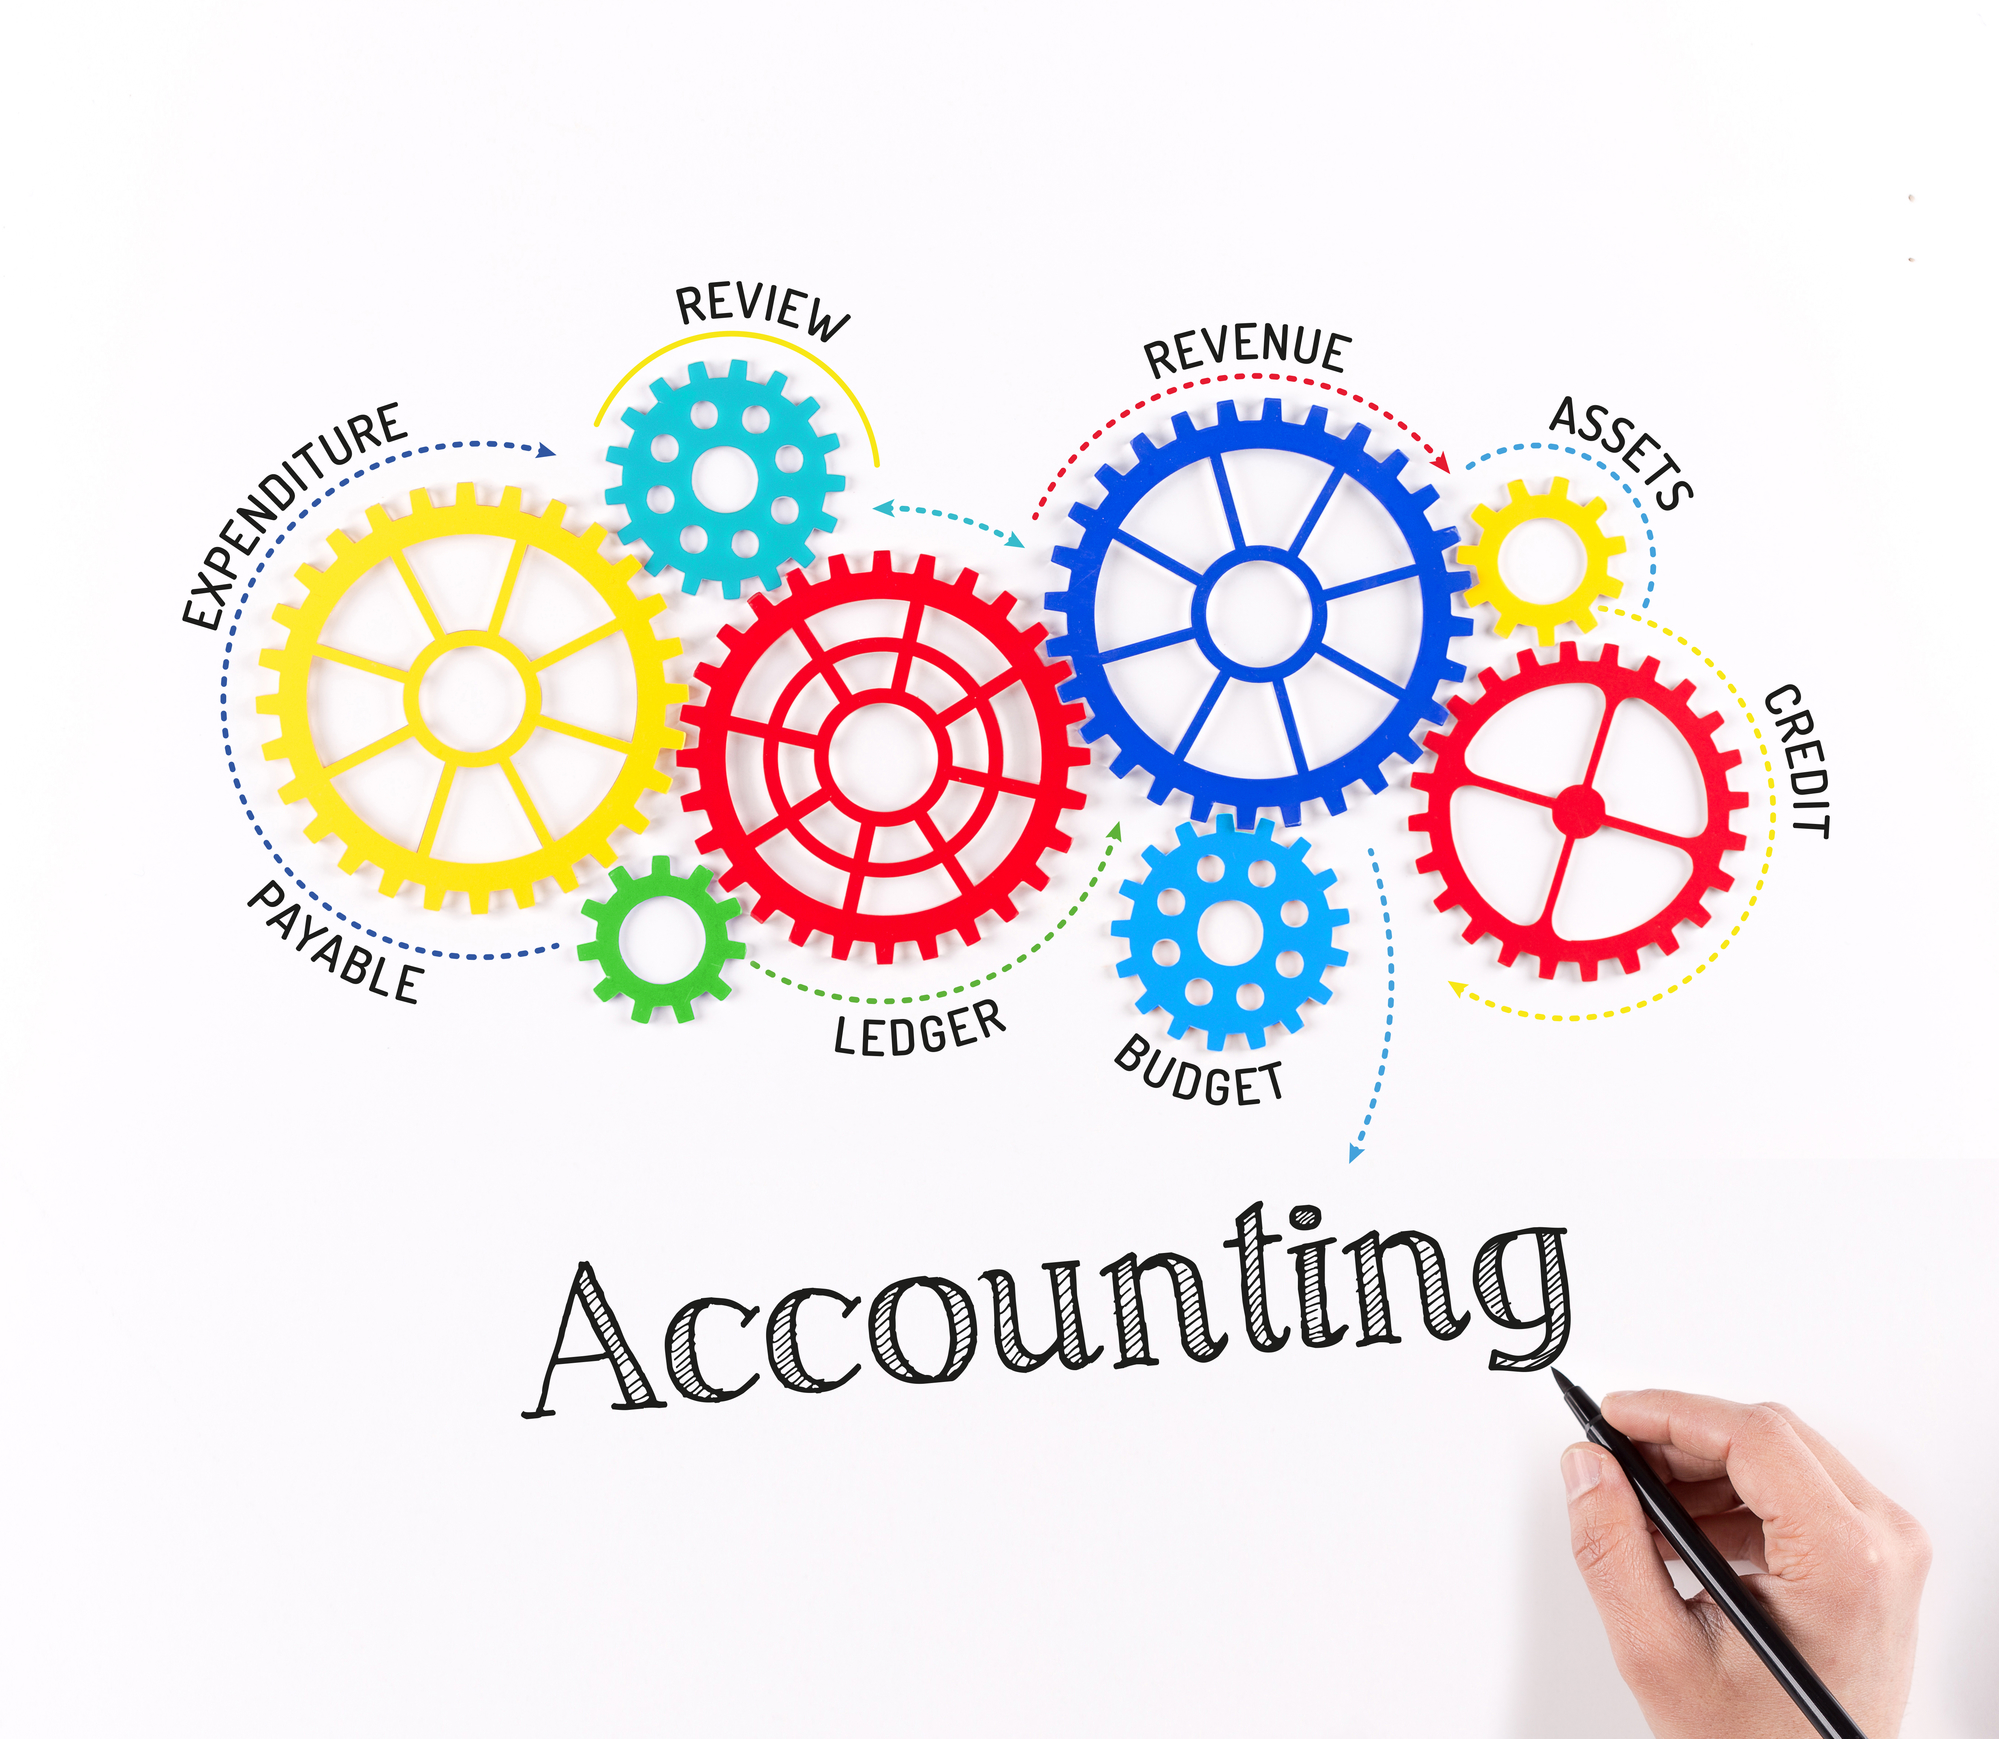 accounting plays an important role in business decision making process